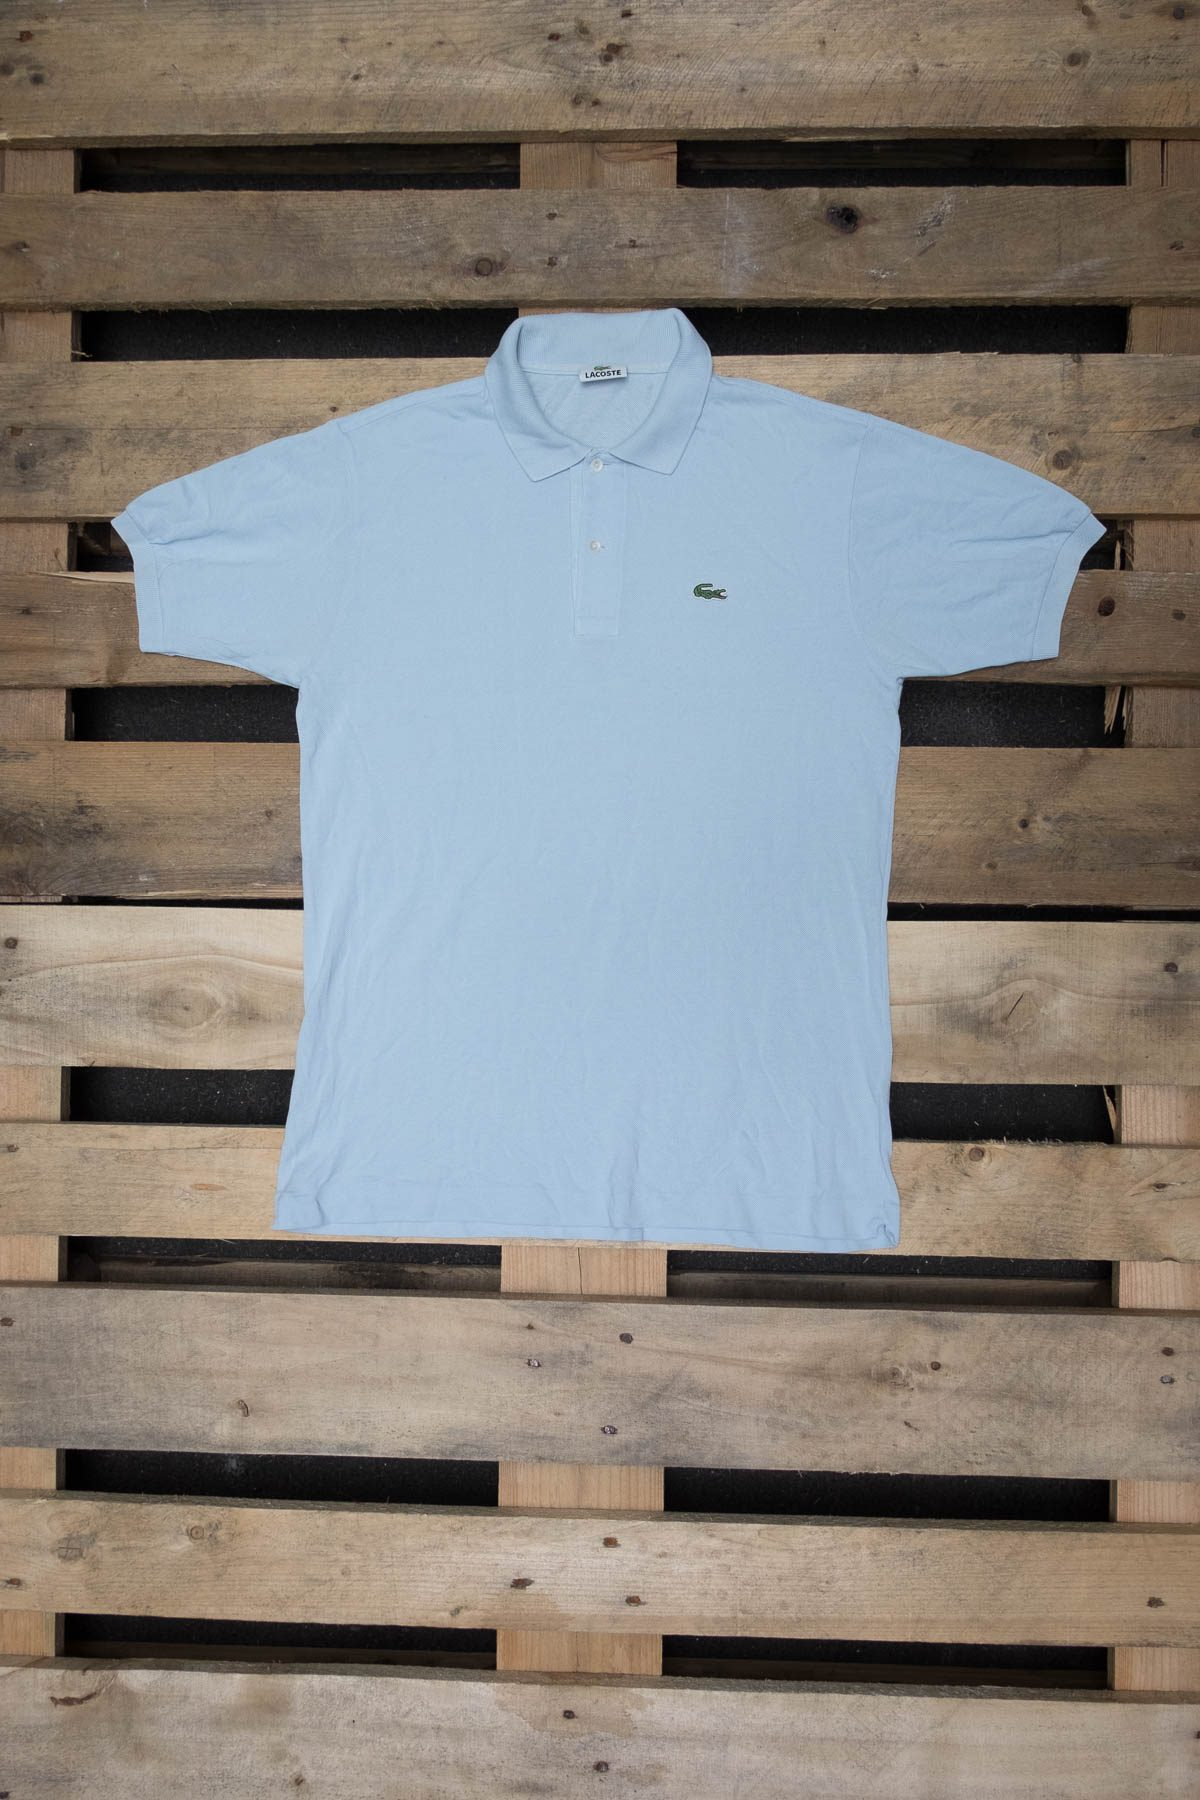 Lacoste T-SHIRT POLO VINTAGE Ice Blue